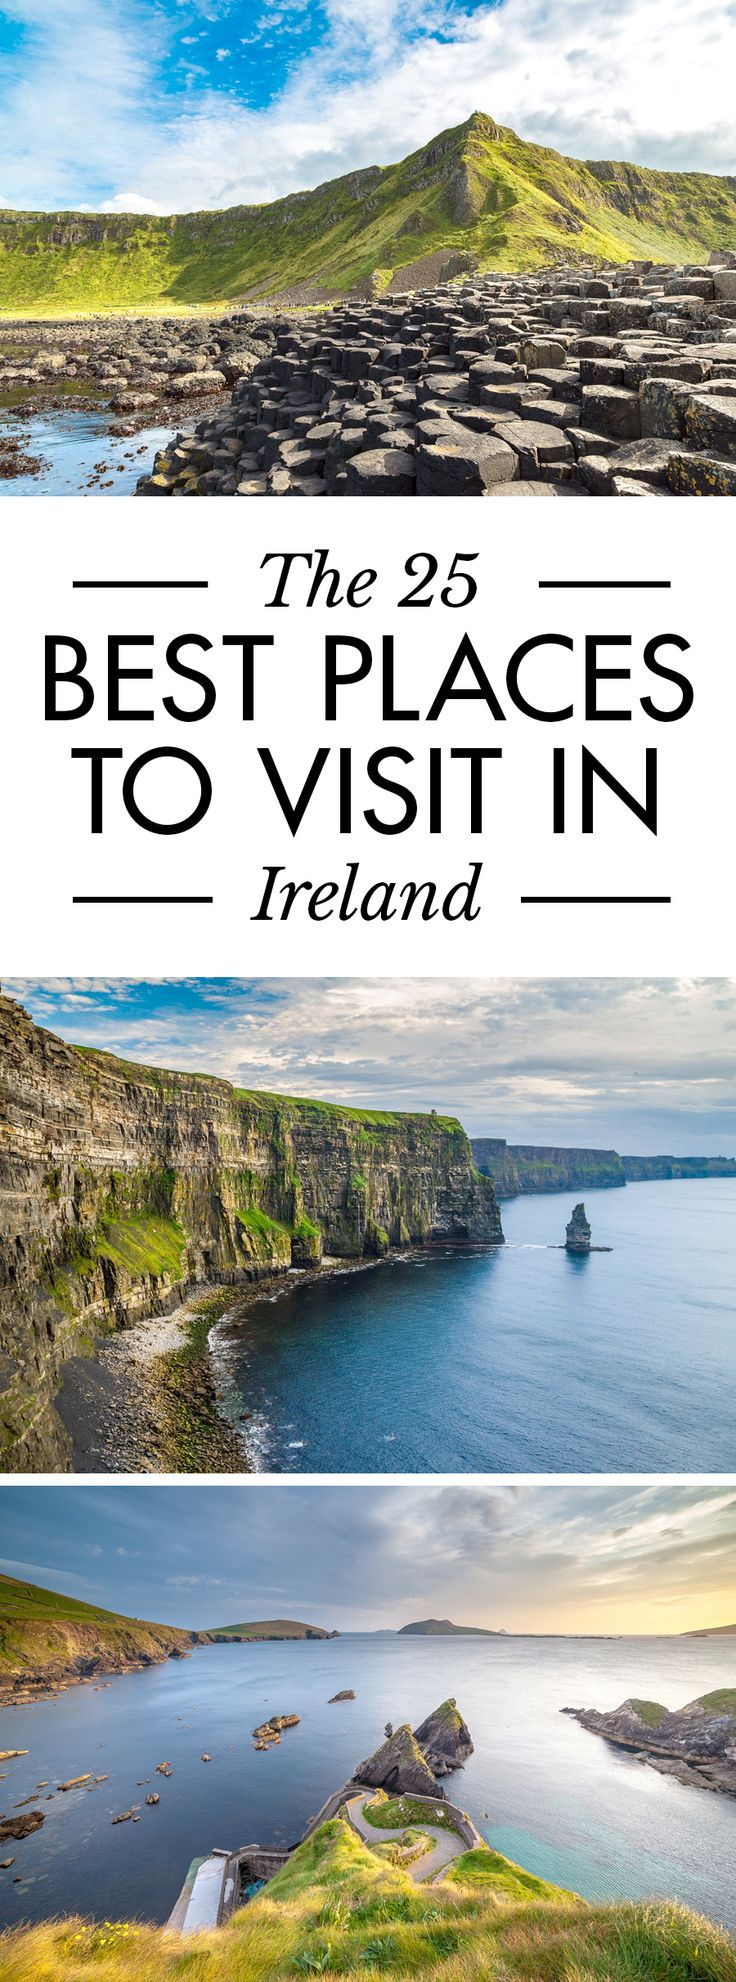 Click the pin to discover some of the best places to visit in Ireland. Don't miss out! There are so many amazing things to do in Ireland. #Ireland